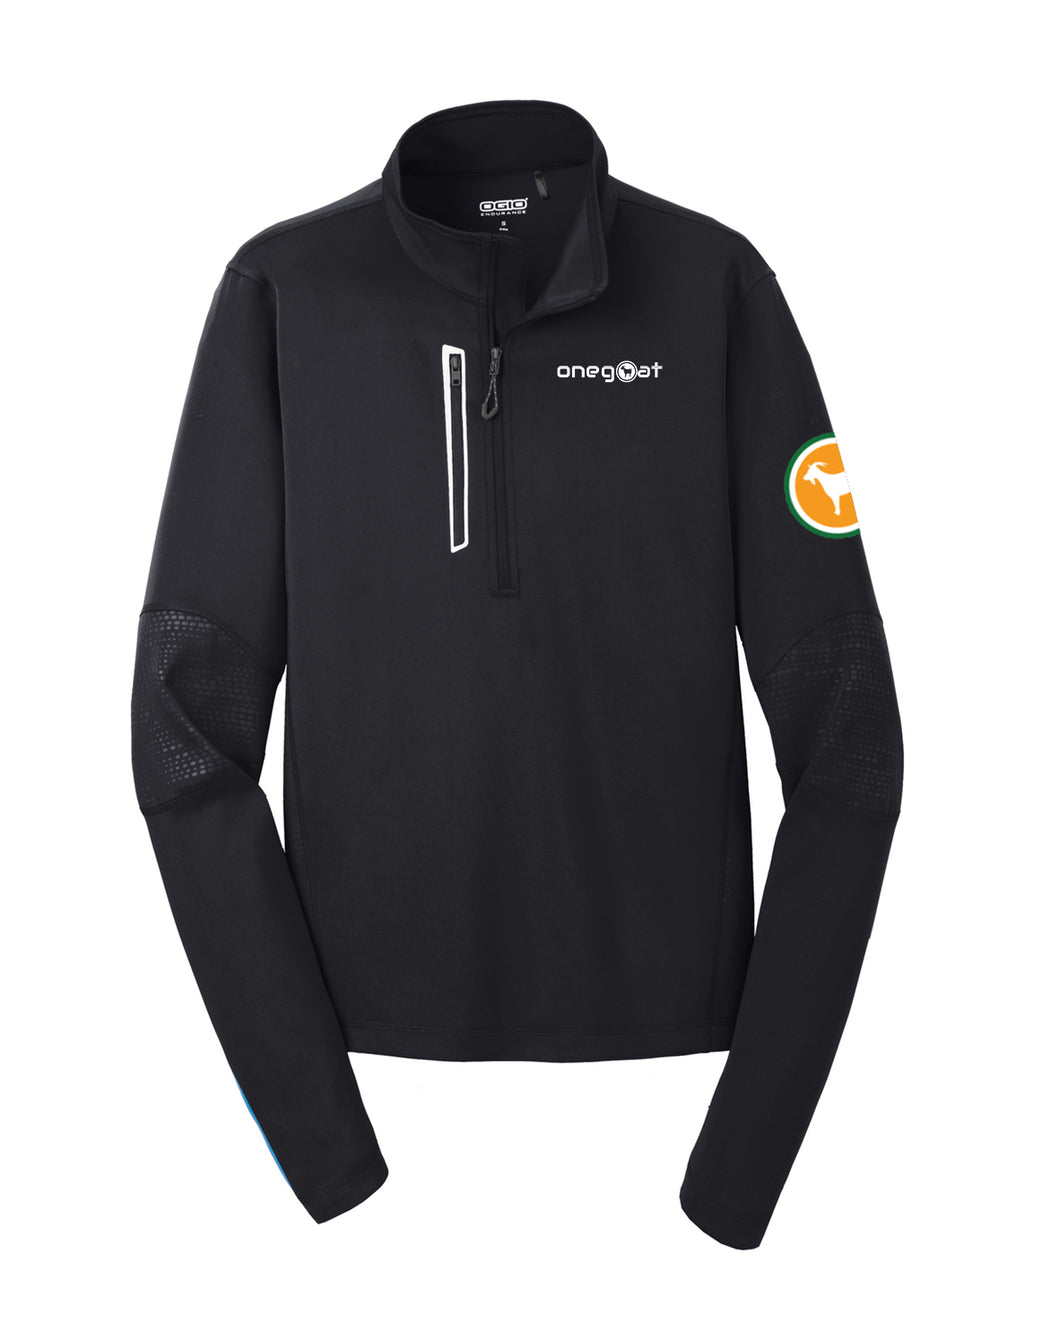 OneGoat 1/4 zip made by Ogio - Mens